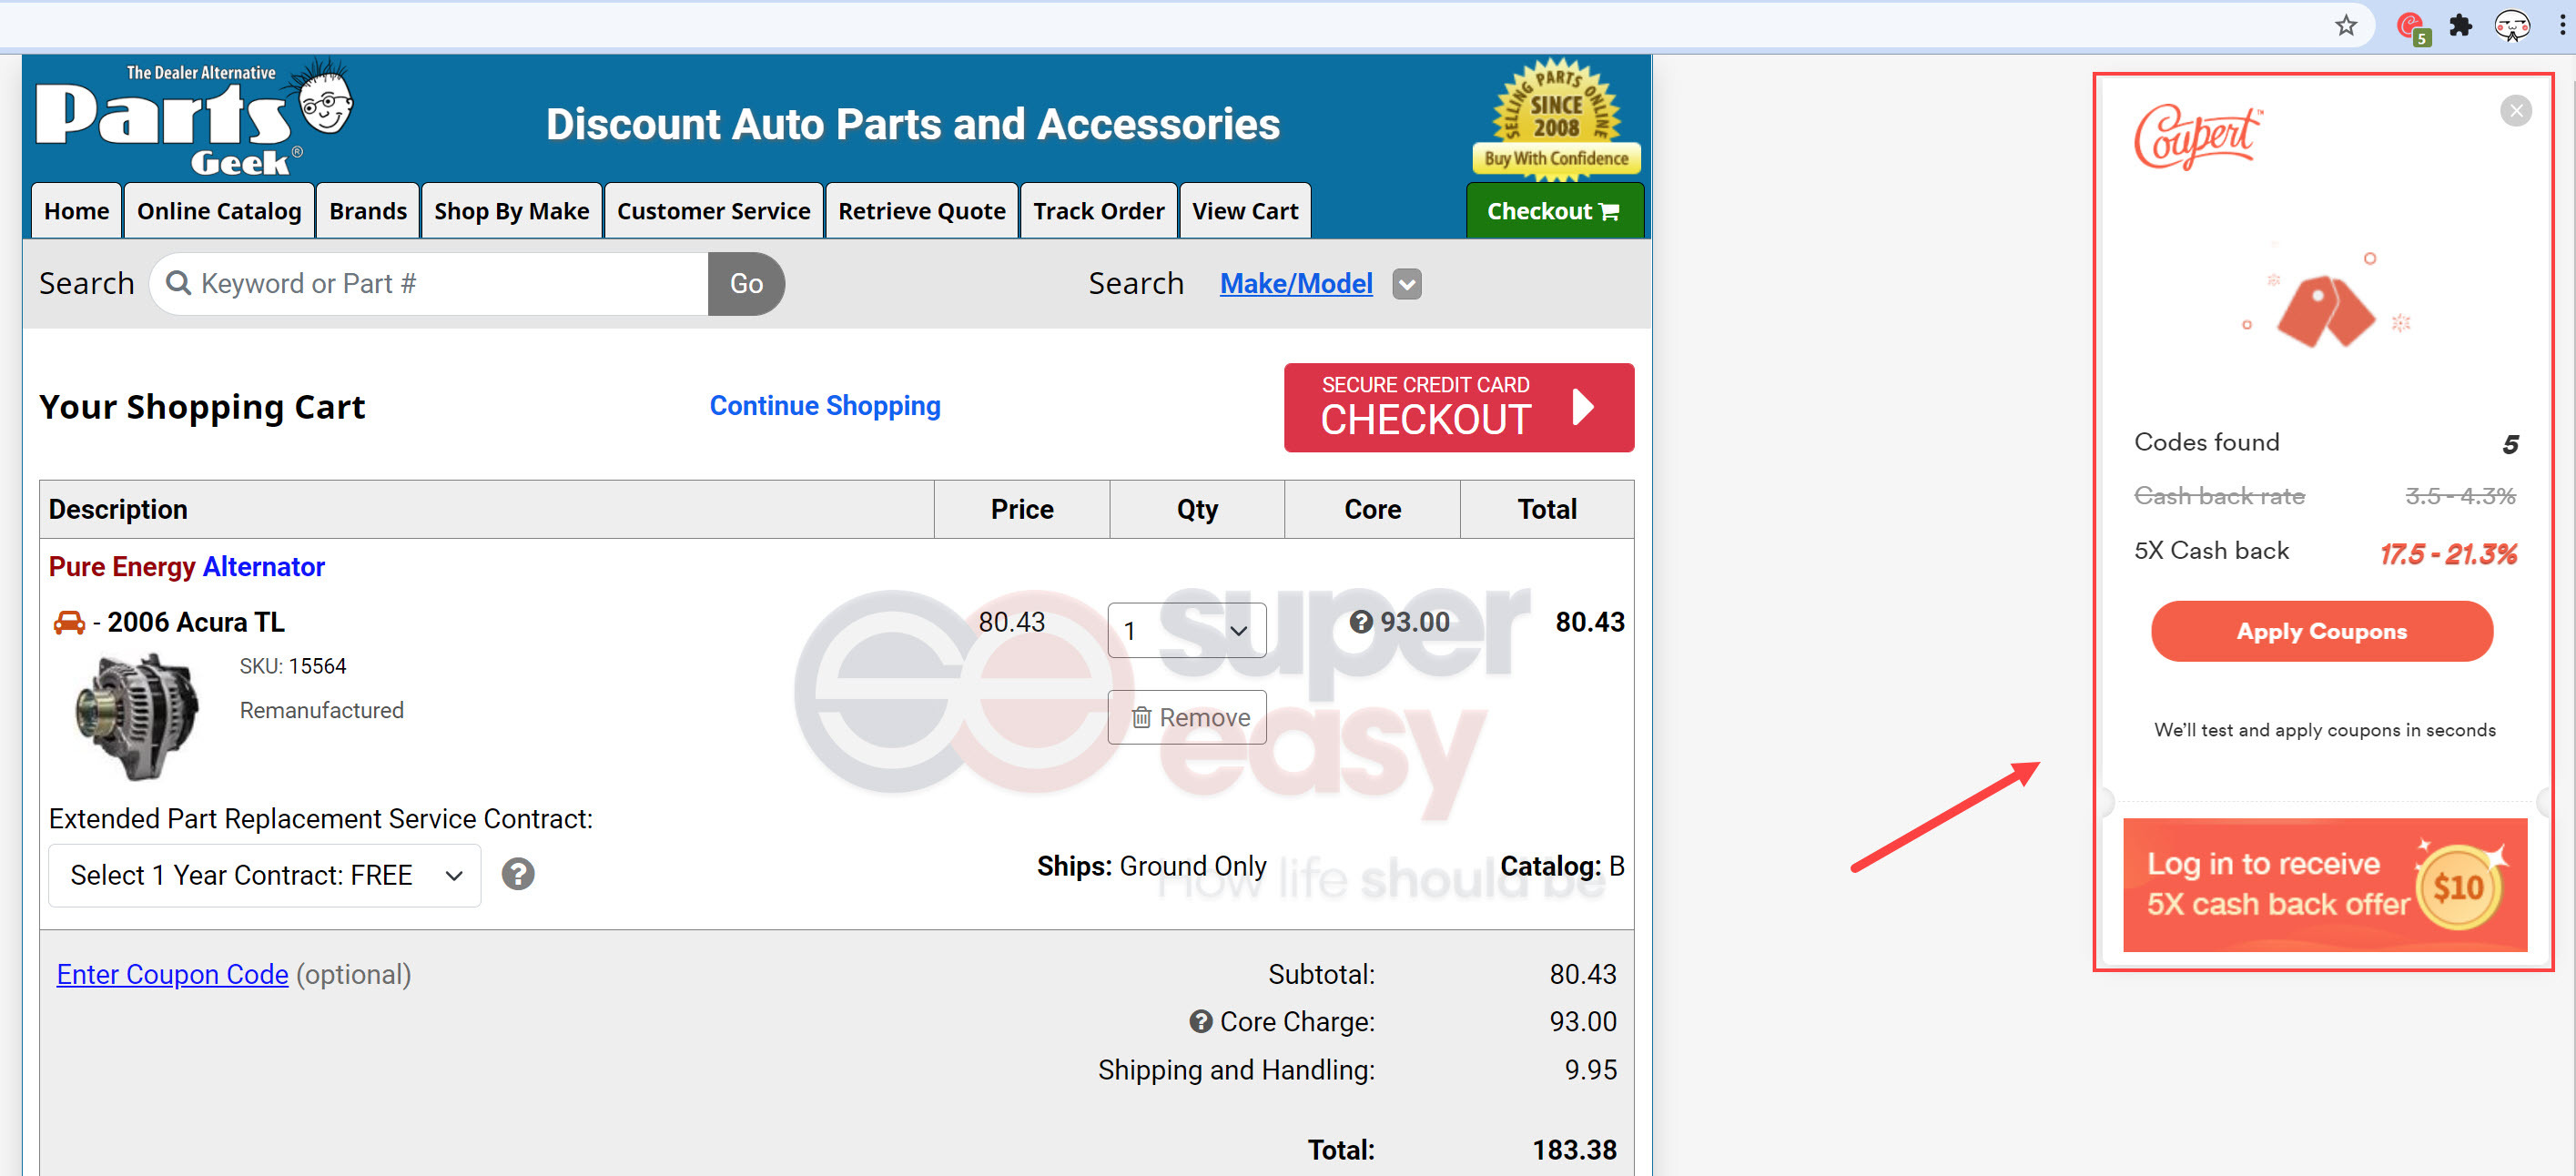 Parts Geek coupons coupert checkout